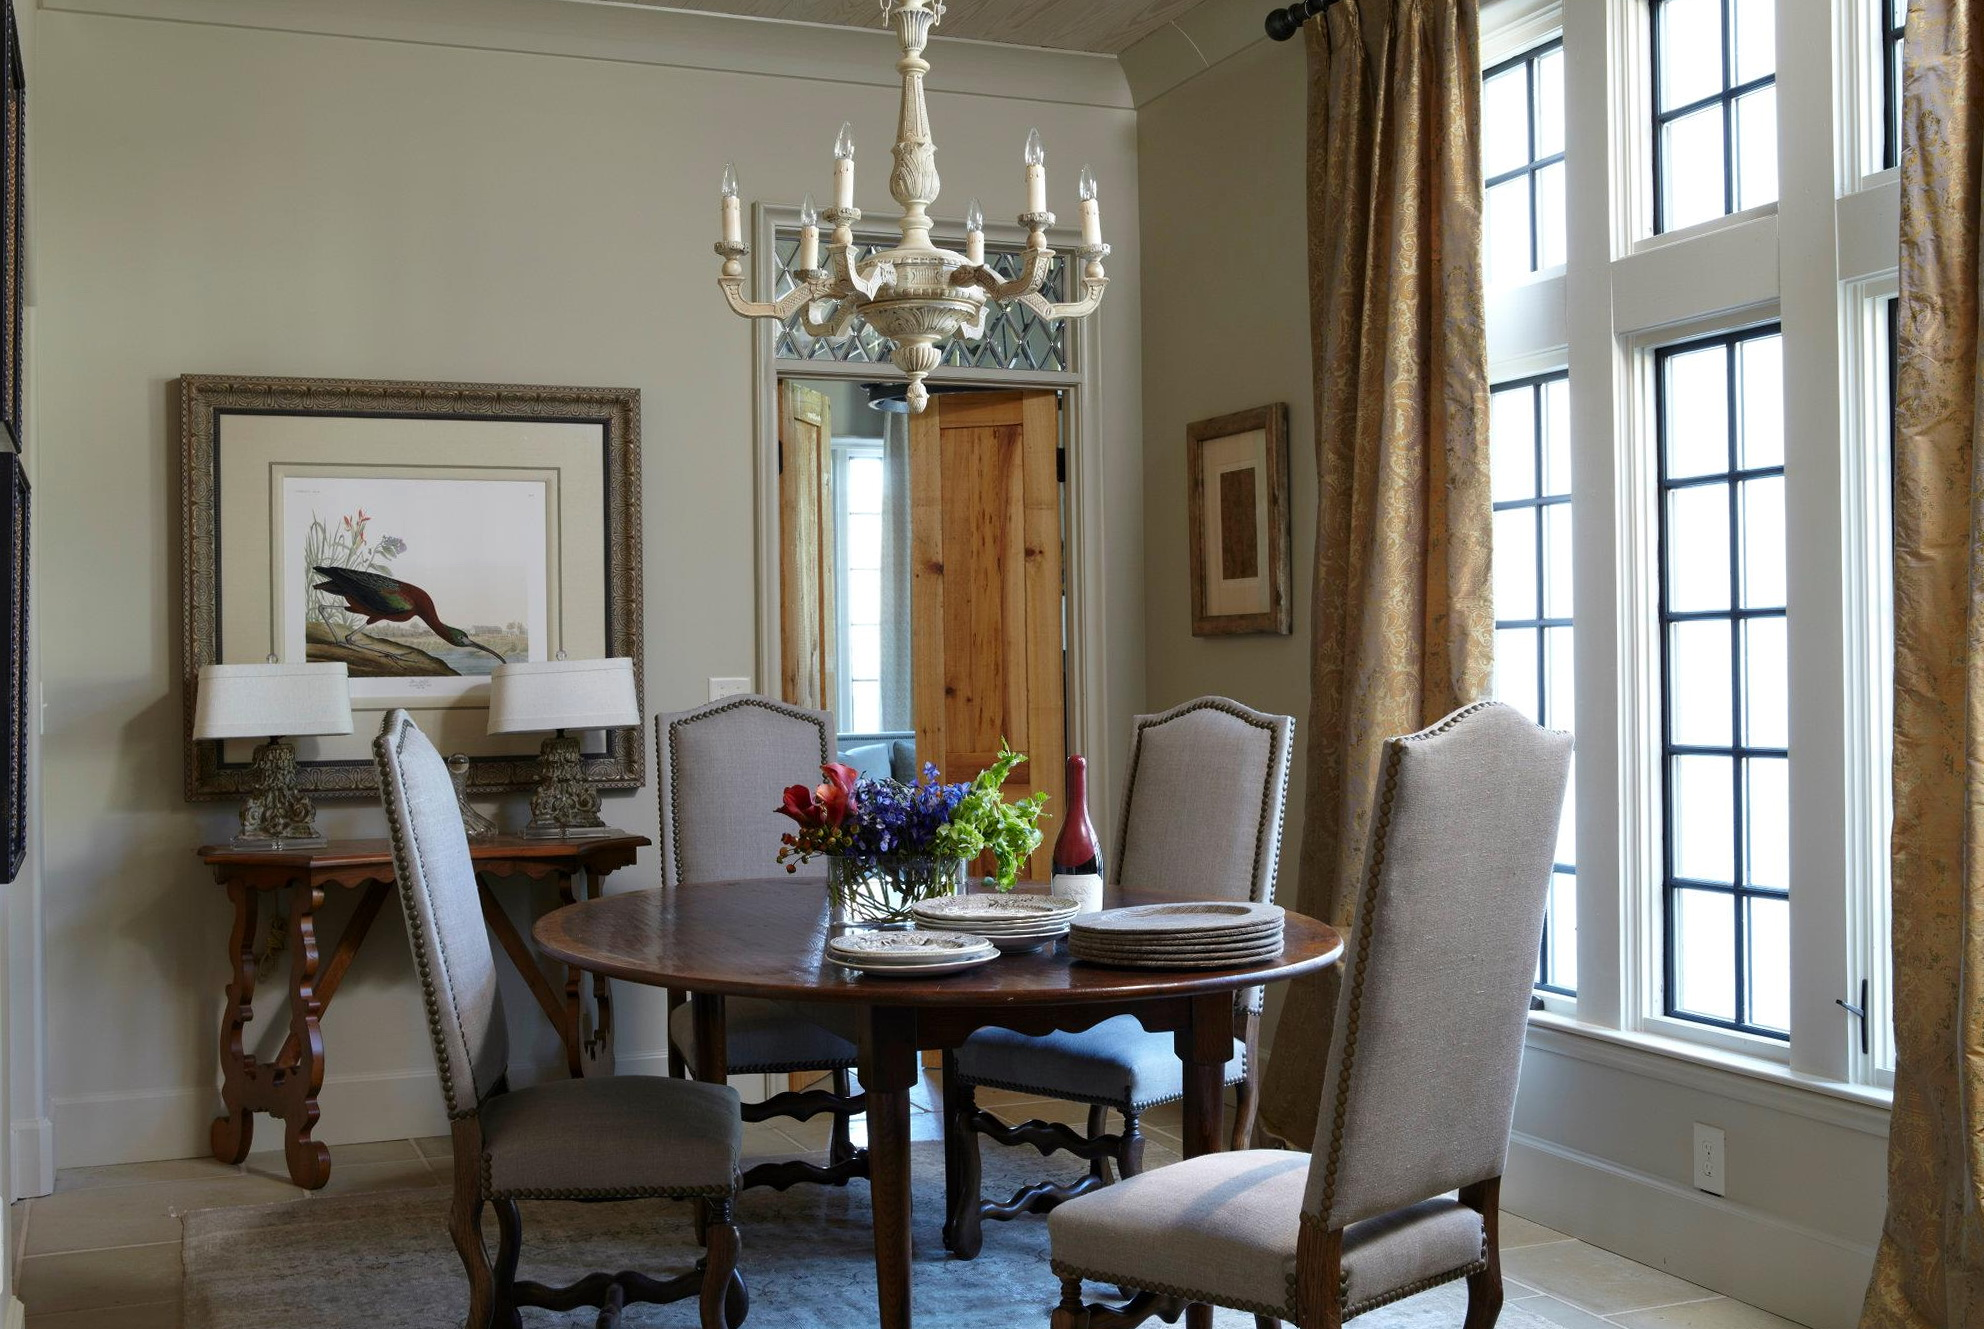 The curtain exchange baton rouge home design ideas for Home design baton rouge